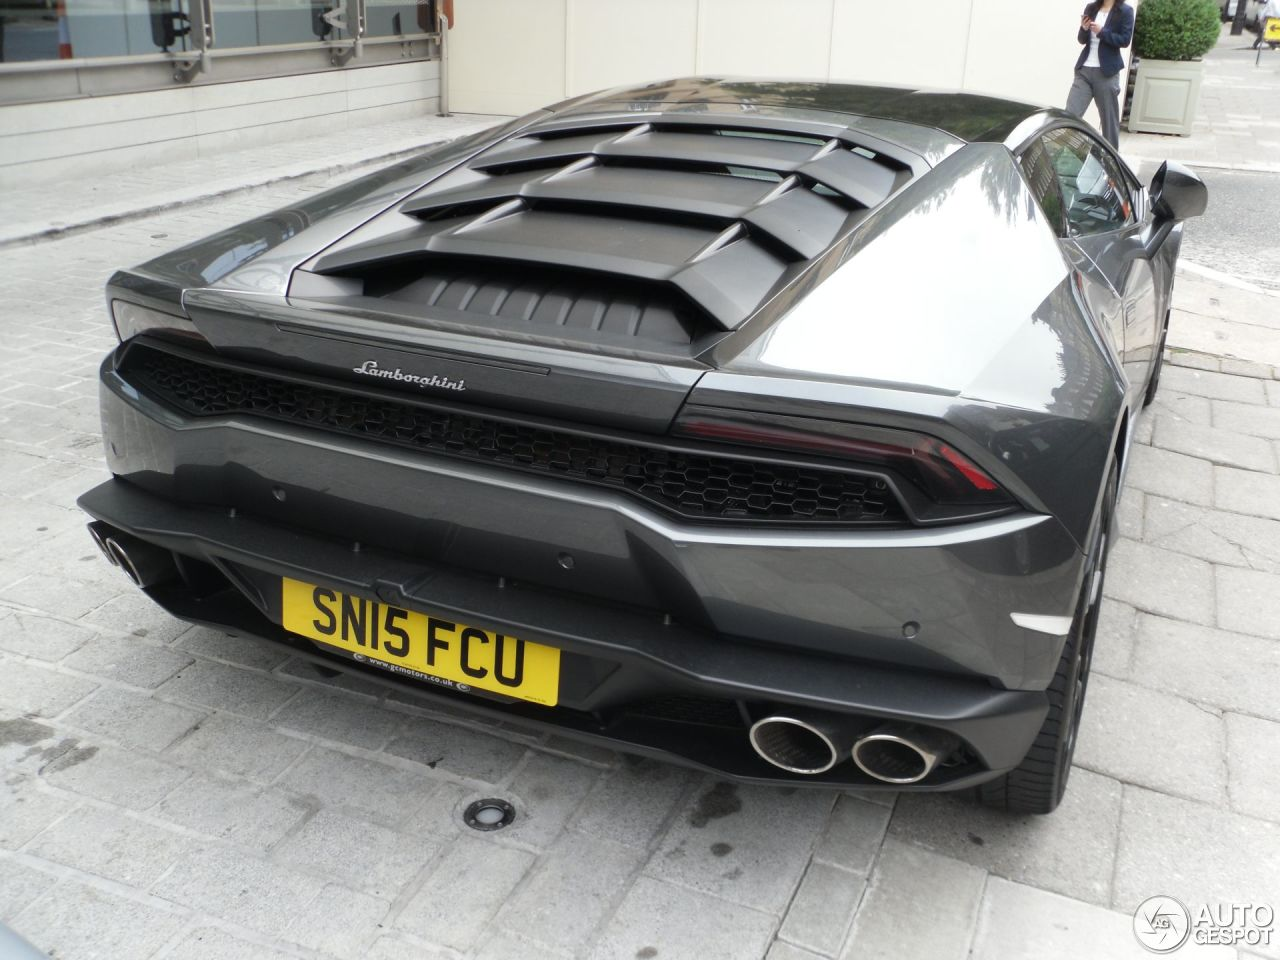 lamborghini huracan uk price lamborghini huracan uk price. Black Bedroom Furniture Sets. Home Design Ideas